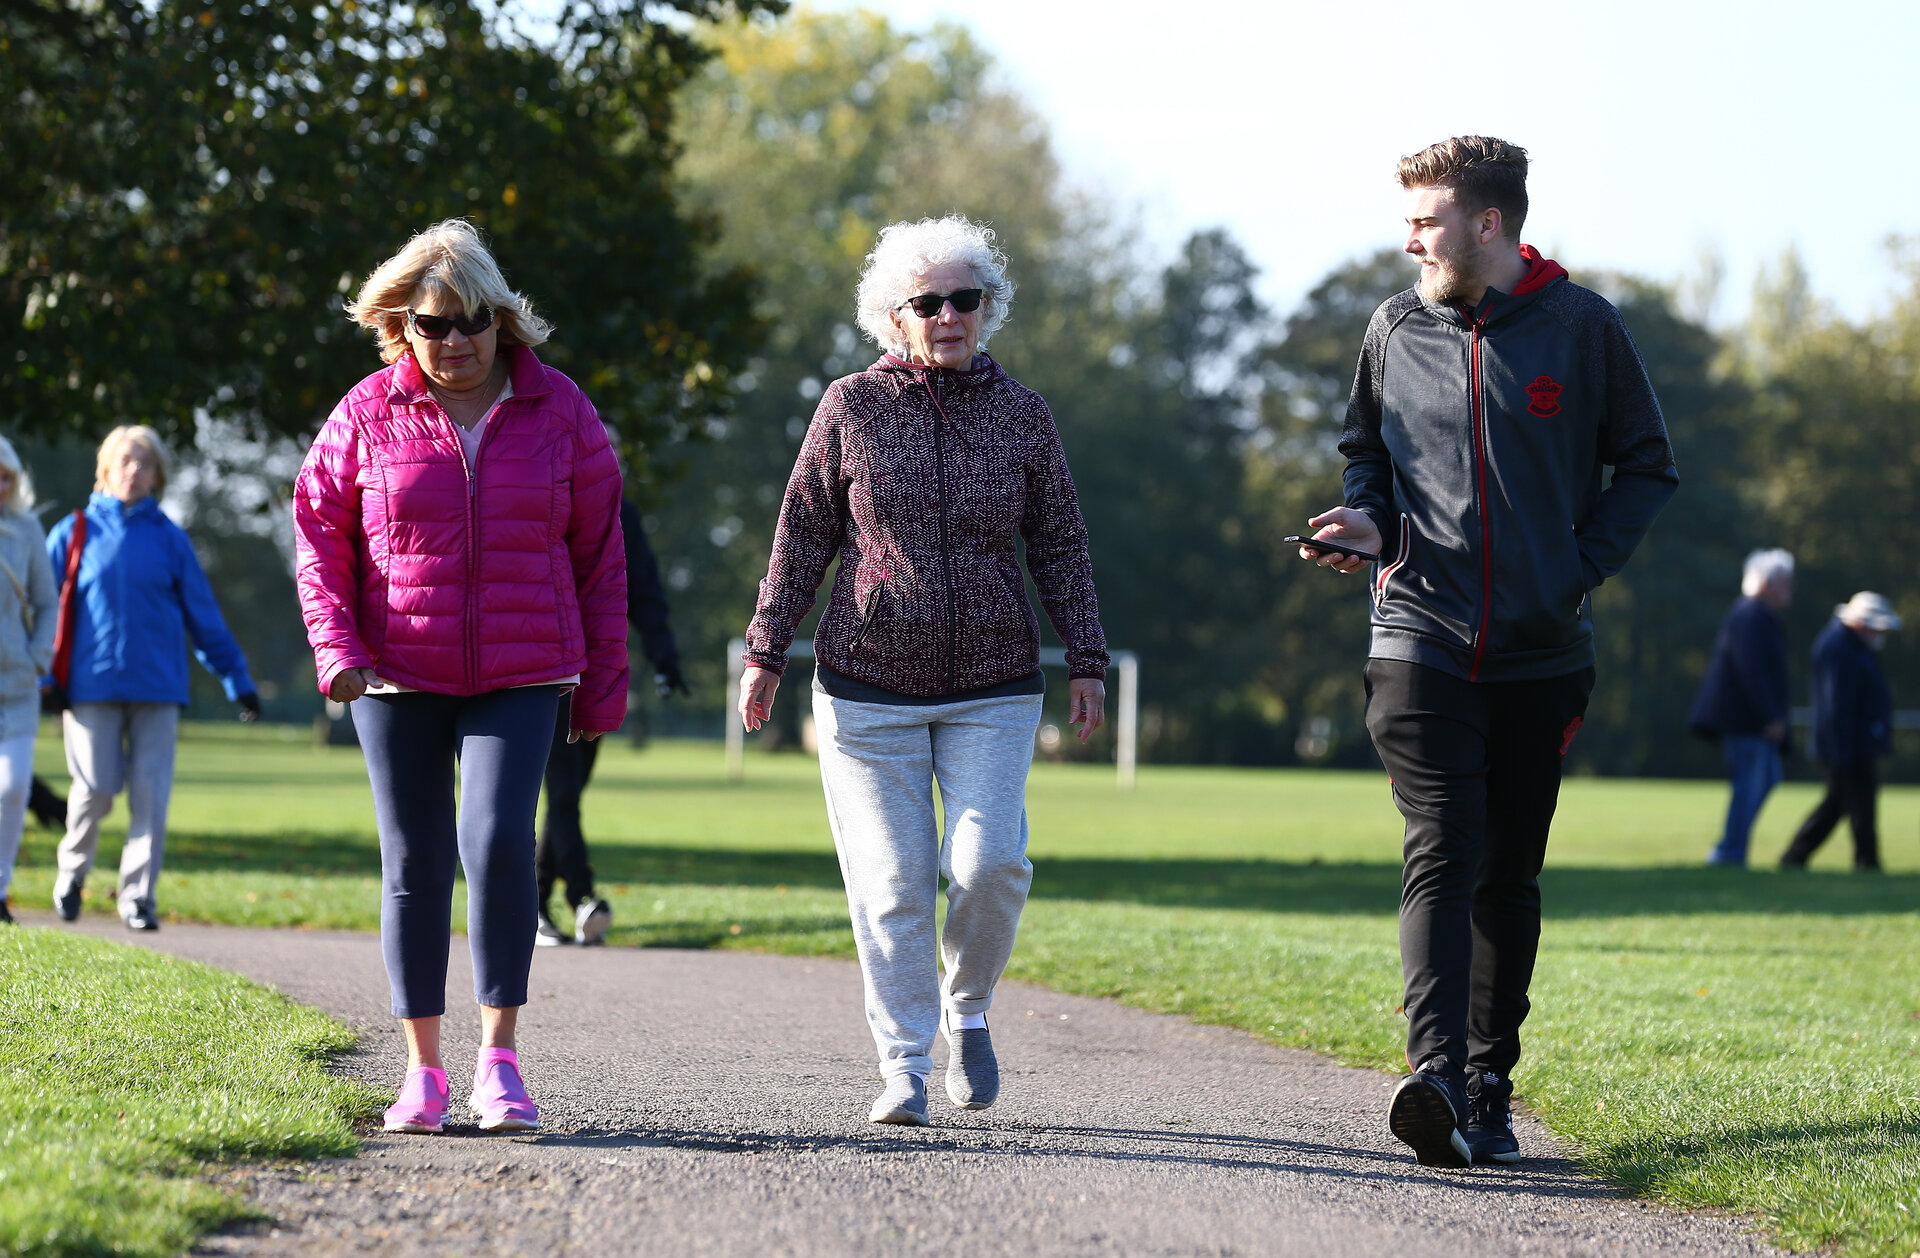 SOUTHAMPTON, ENGLAND - OCTOBER 14: Participants of a Saints Foundation walk around Riverside Park, Southampton, on October 14, 2020 in Southampton, England. (Photo by Matt Watson/Southampton FC via Getty Images)